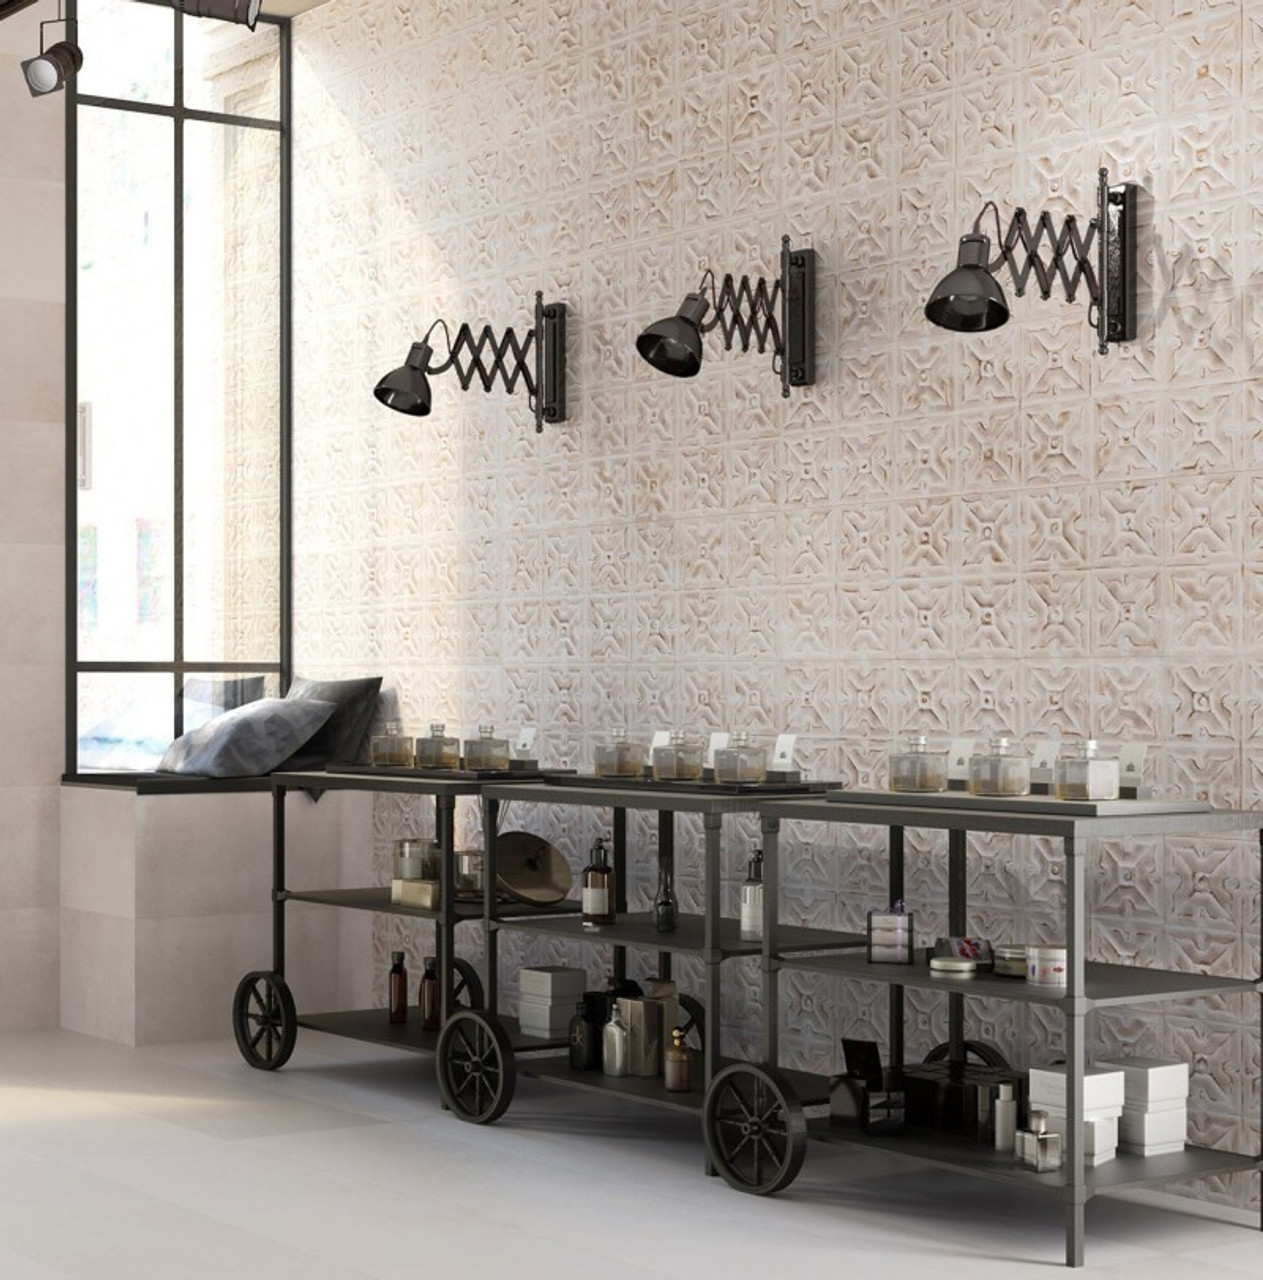 Track Decorative Wall Tiles